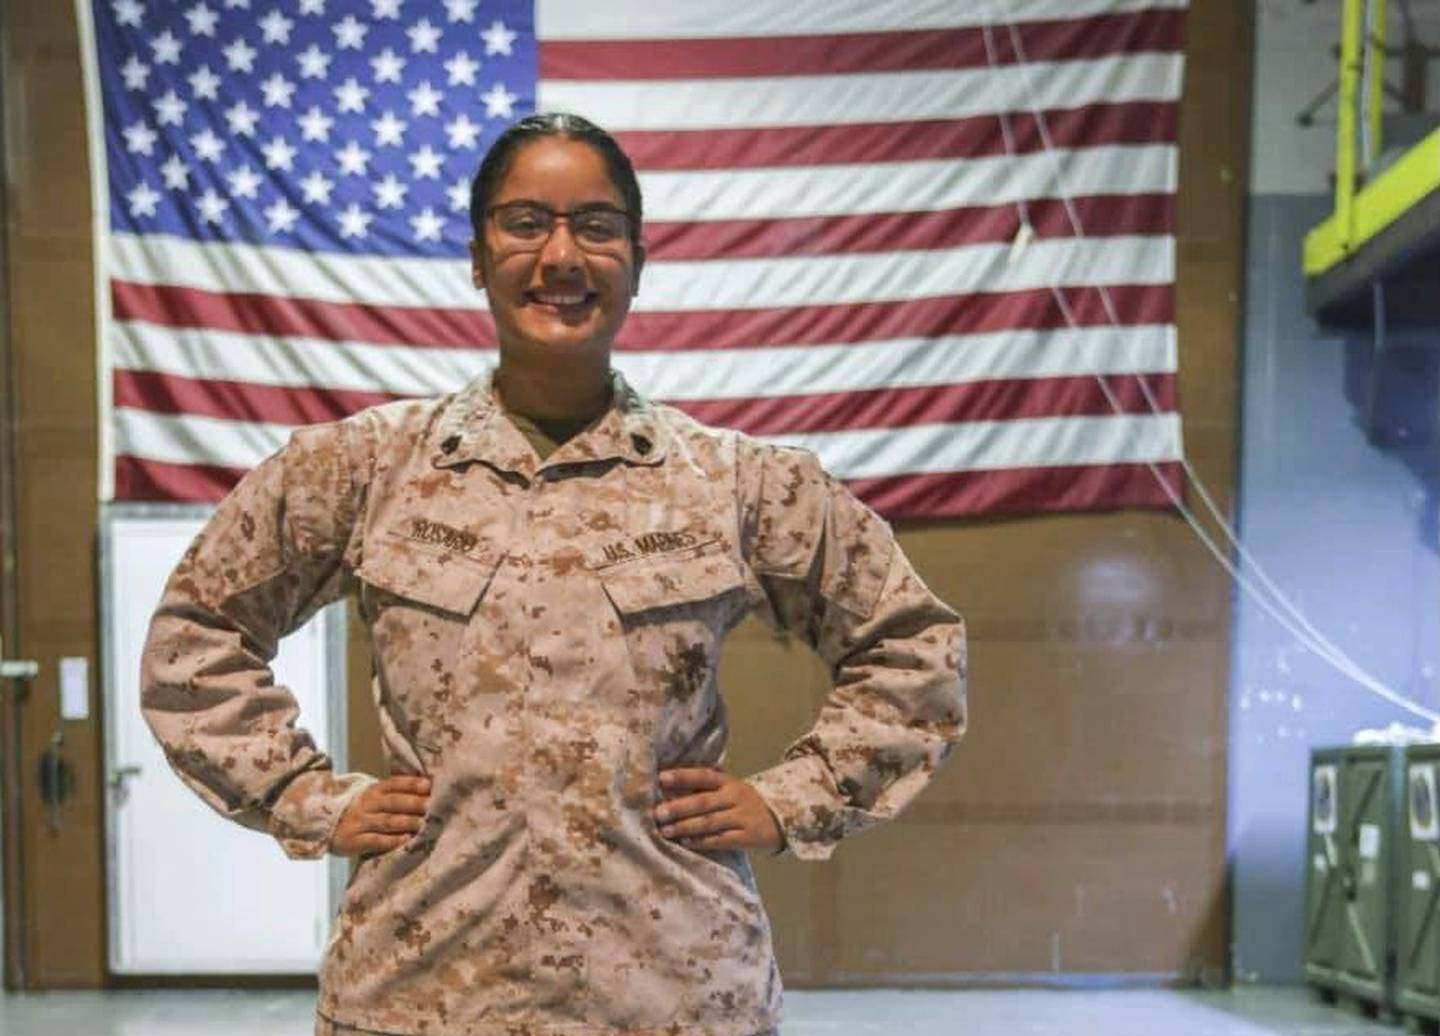 Sgt. Johanny Rosariopichardo (Naval Amphibious Force, Task Force 51/5th Marine Expeditionary Brigade Facebook page)